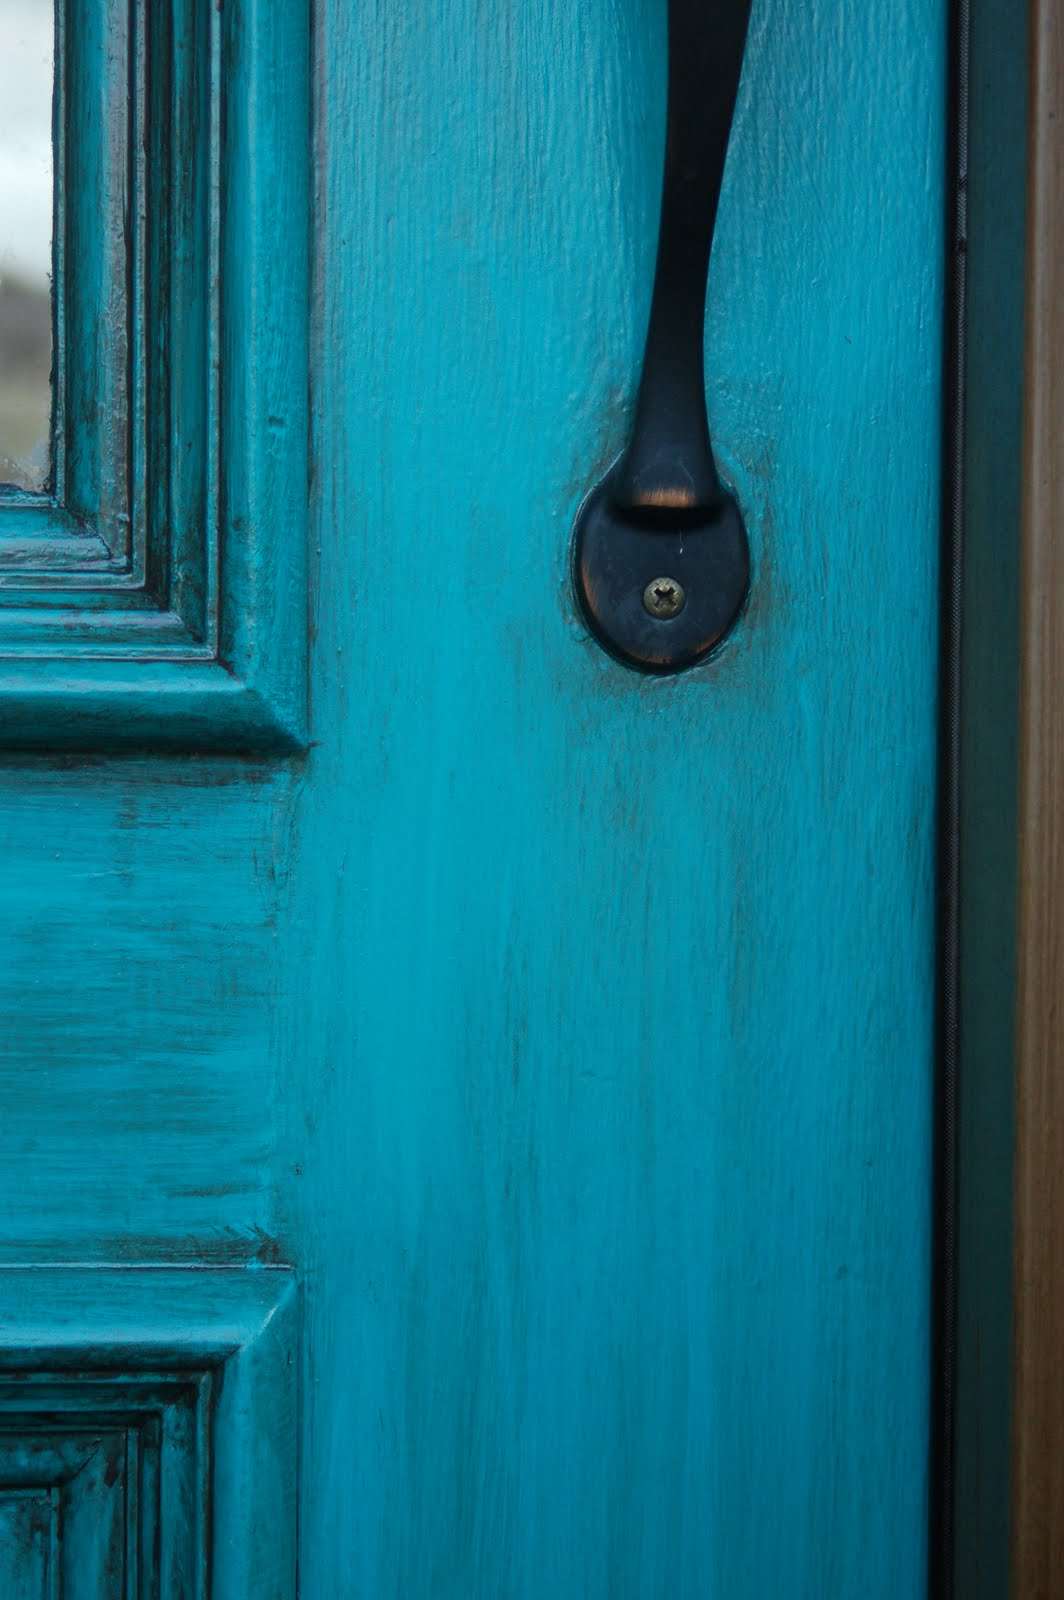 beyond the screen door turquoise front door